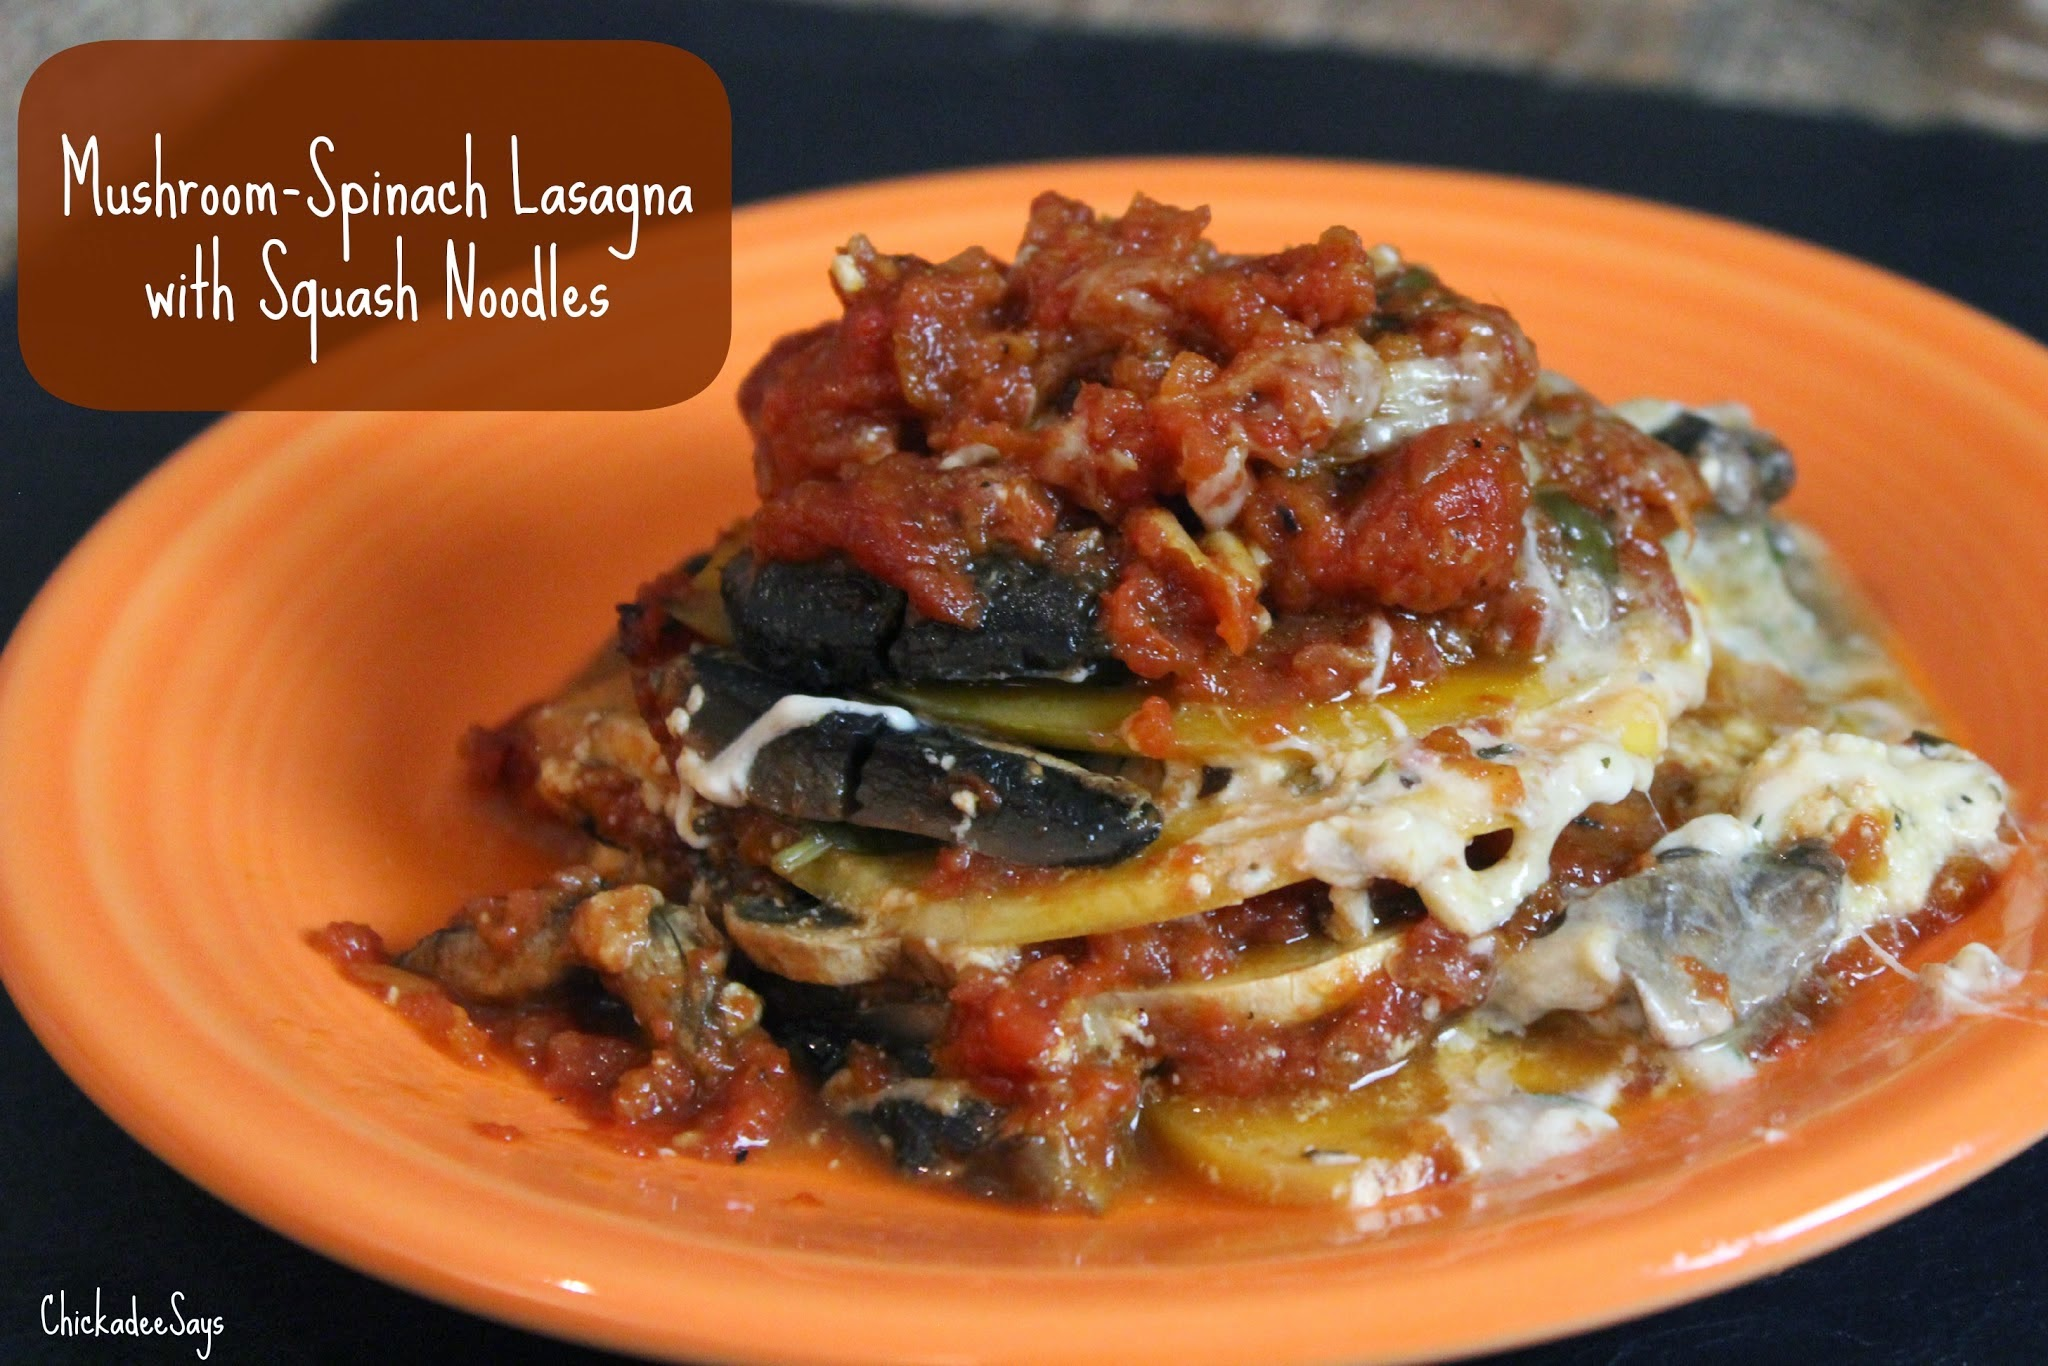 ... Says: Meatless Monday: Mushroom-Spinach Lasagna with Squash Noodles